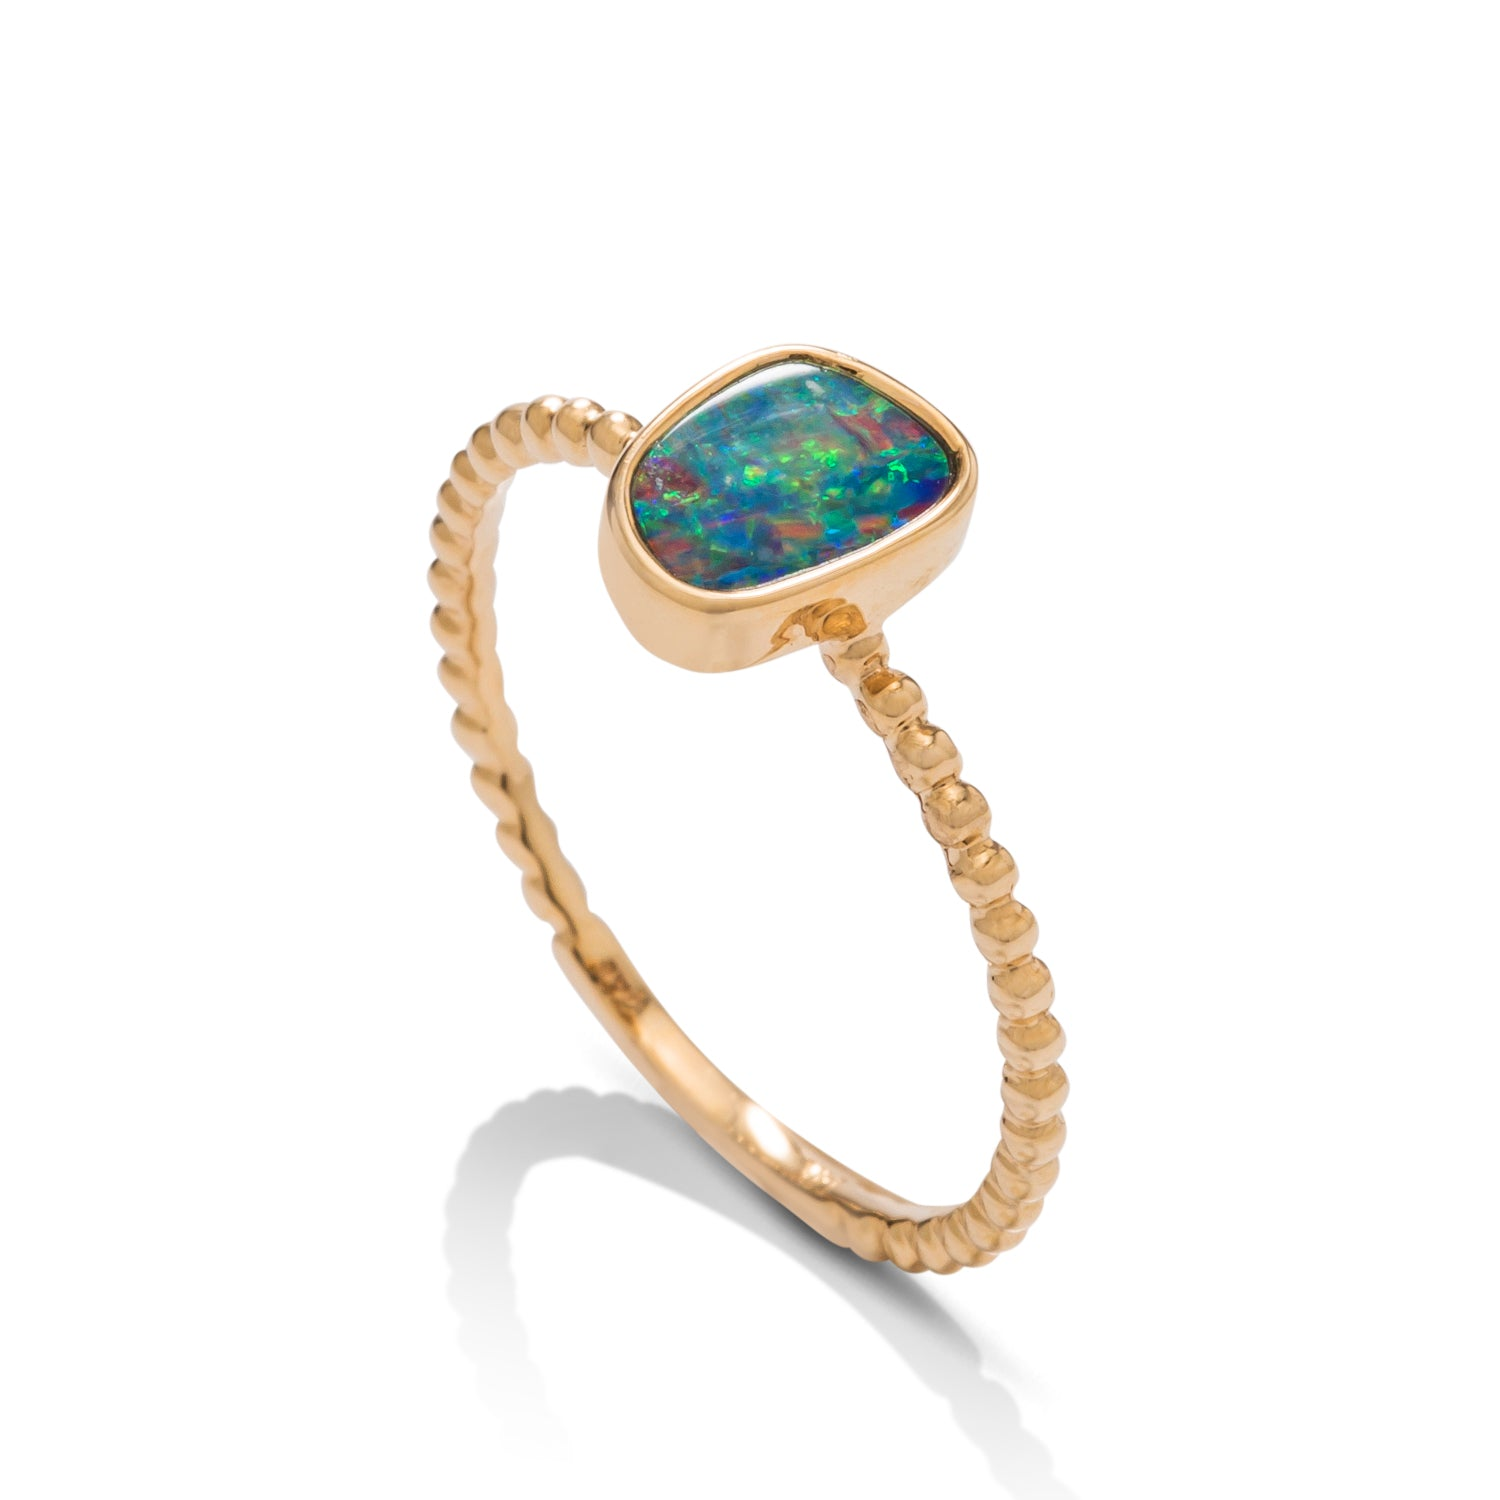 Australian Opal Beaded Ring - Charles Koll Jewellers